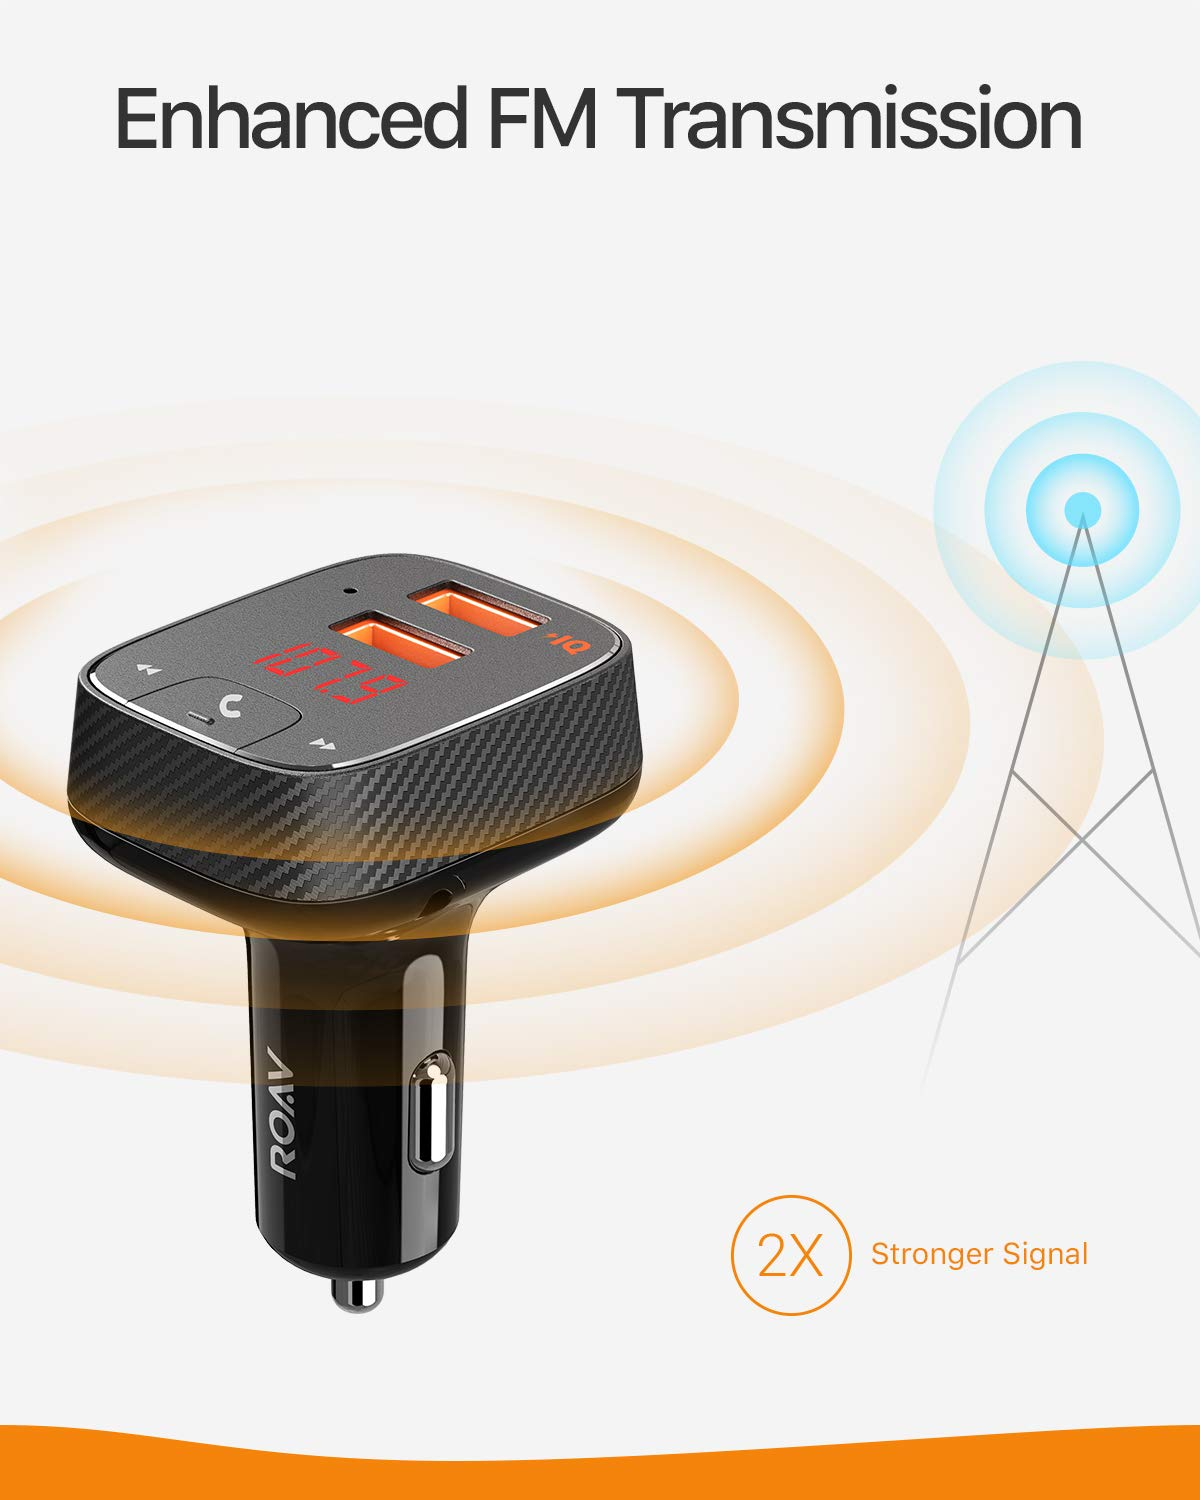 Roav SmartCharge F2, by Anker, FM Transmitter, Bluetooth Receiver, Car Charger with Bluetooth 4.2, Car Locator, App Support, 2 USB Ports, PowerIQ, AUX Output, and USB Drive to Play MP3 Files by ROAV (Image #3)